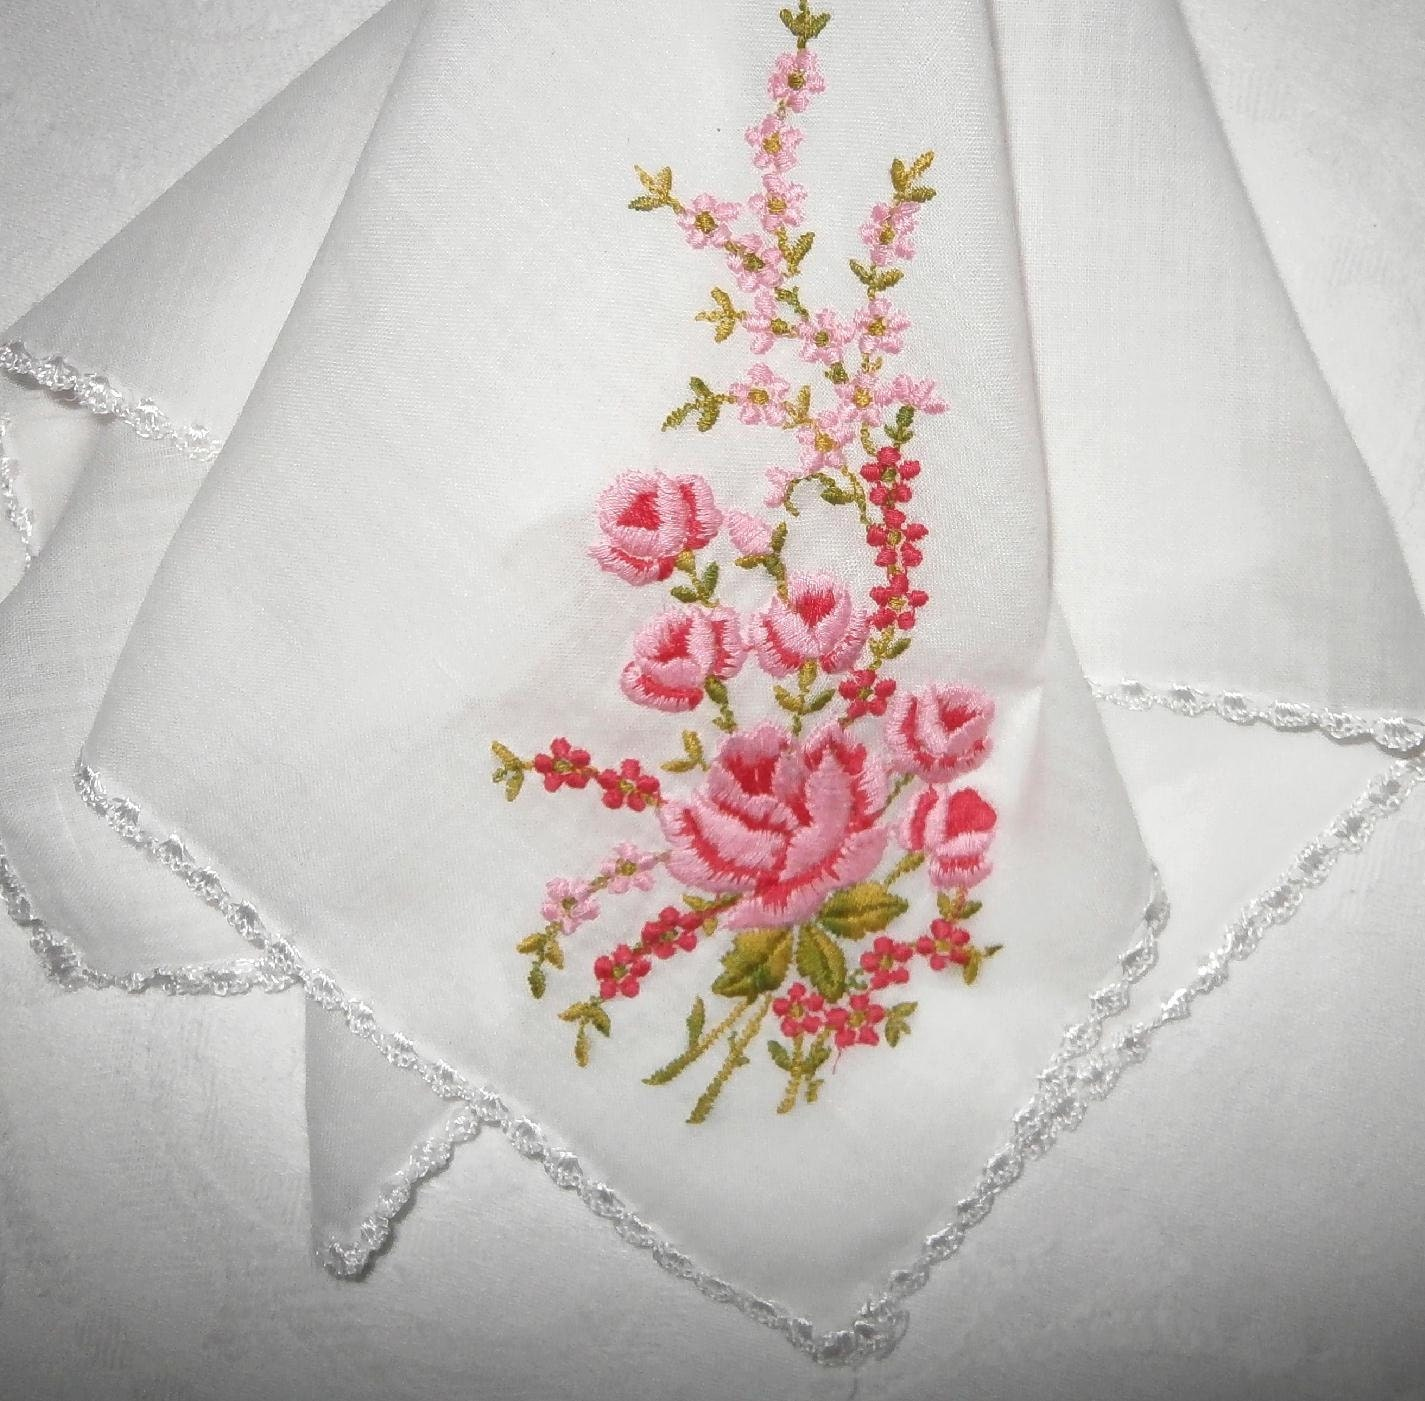 Vintage fine lawn rose pattern embroidered handkerchief